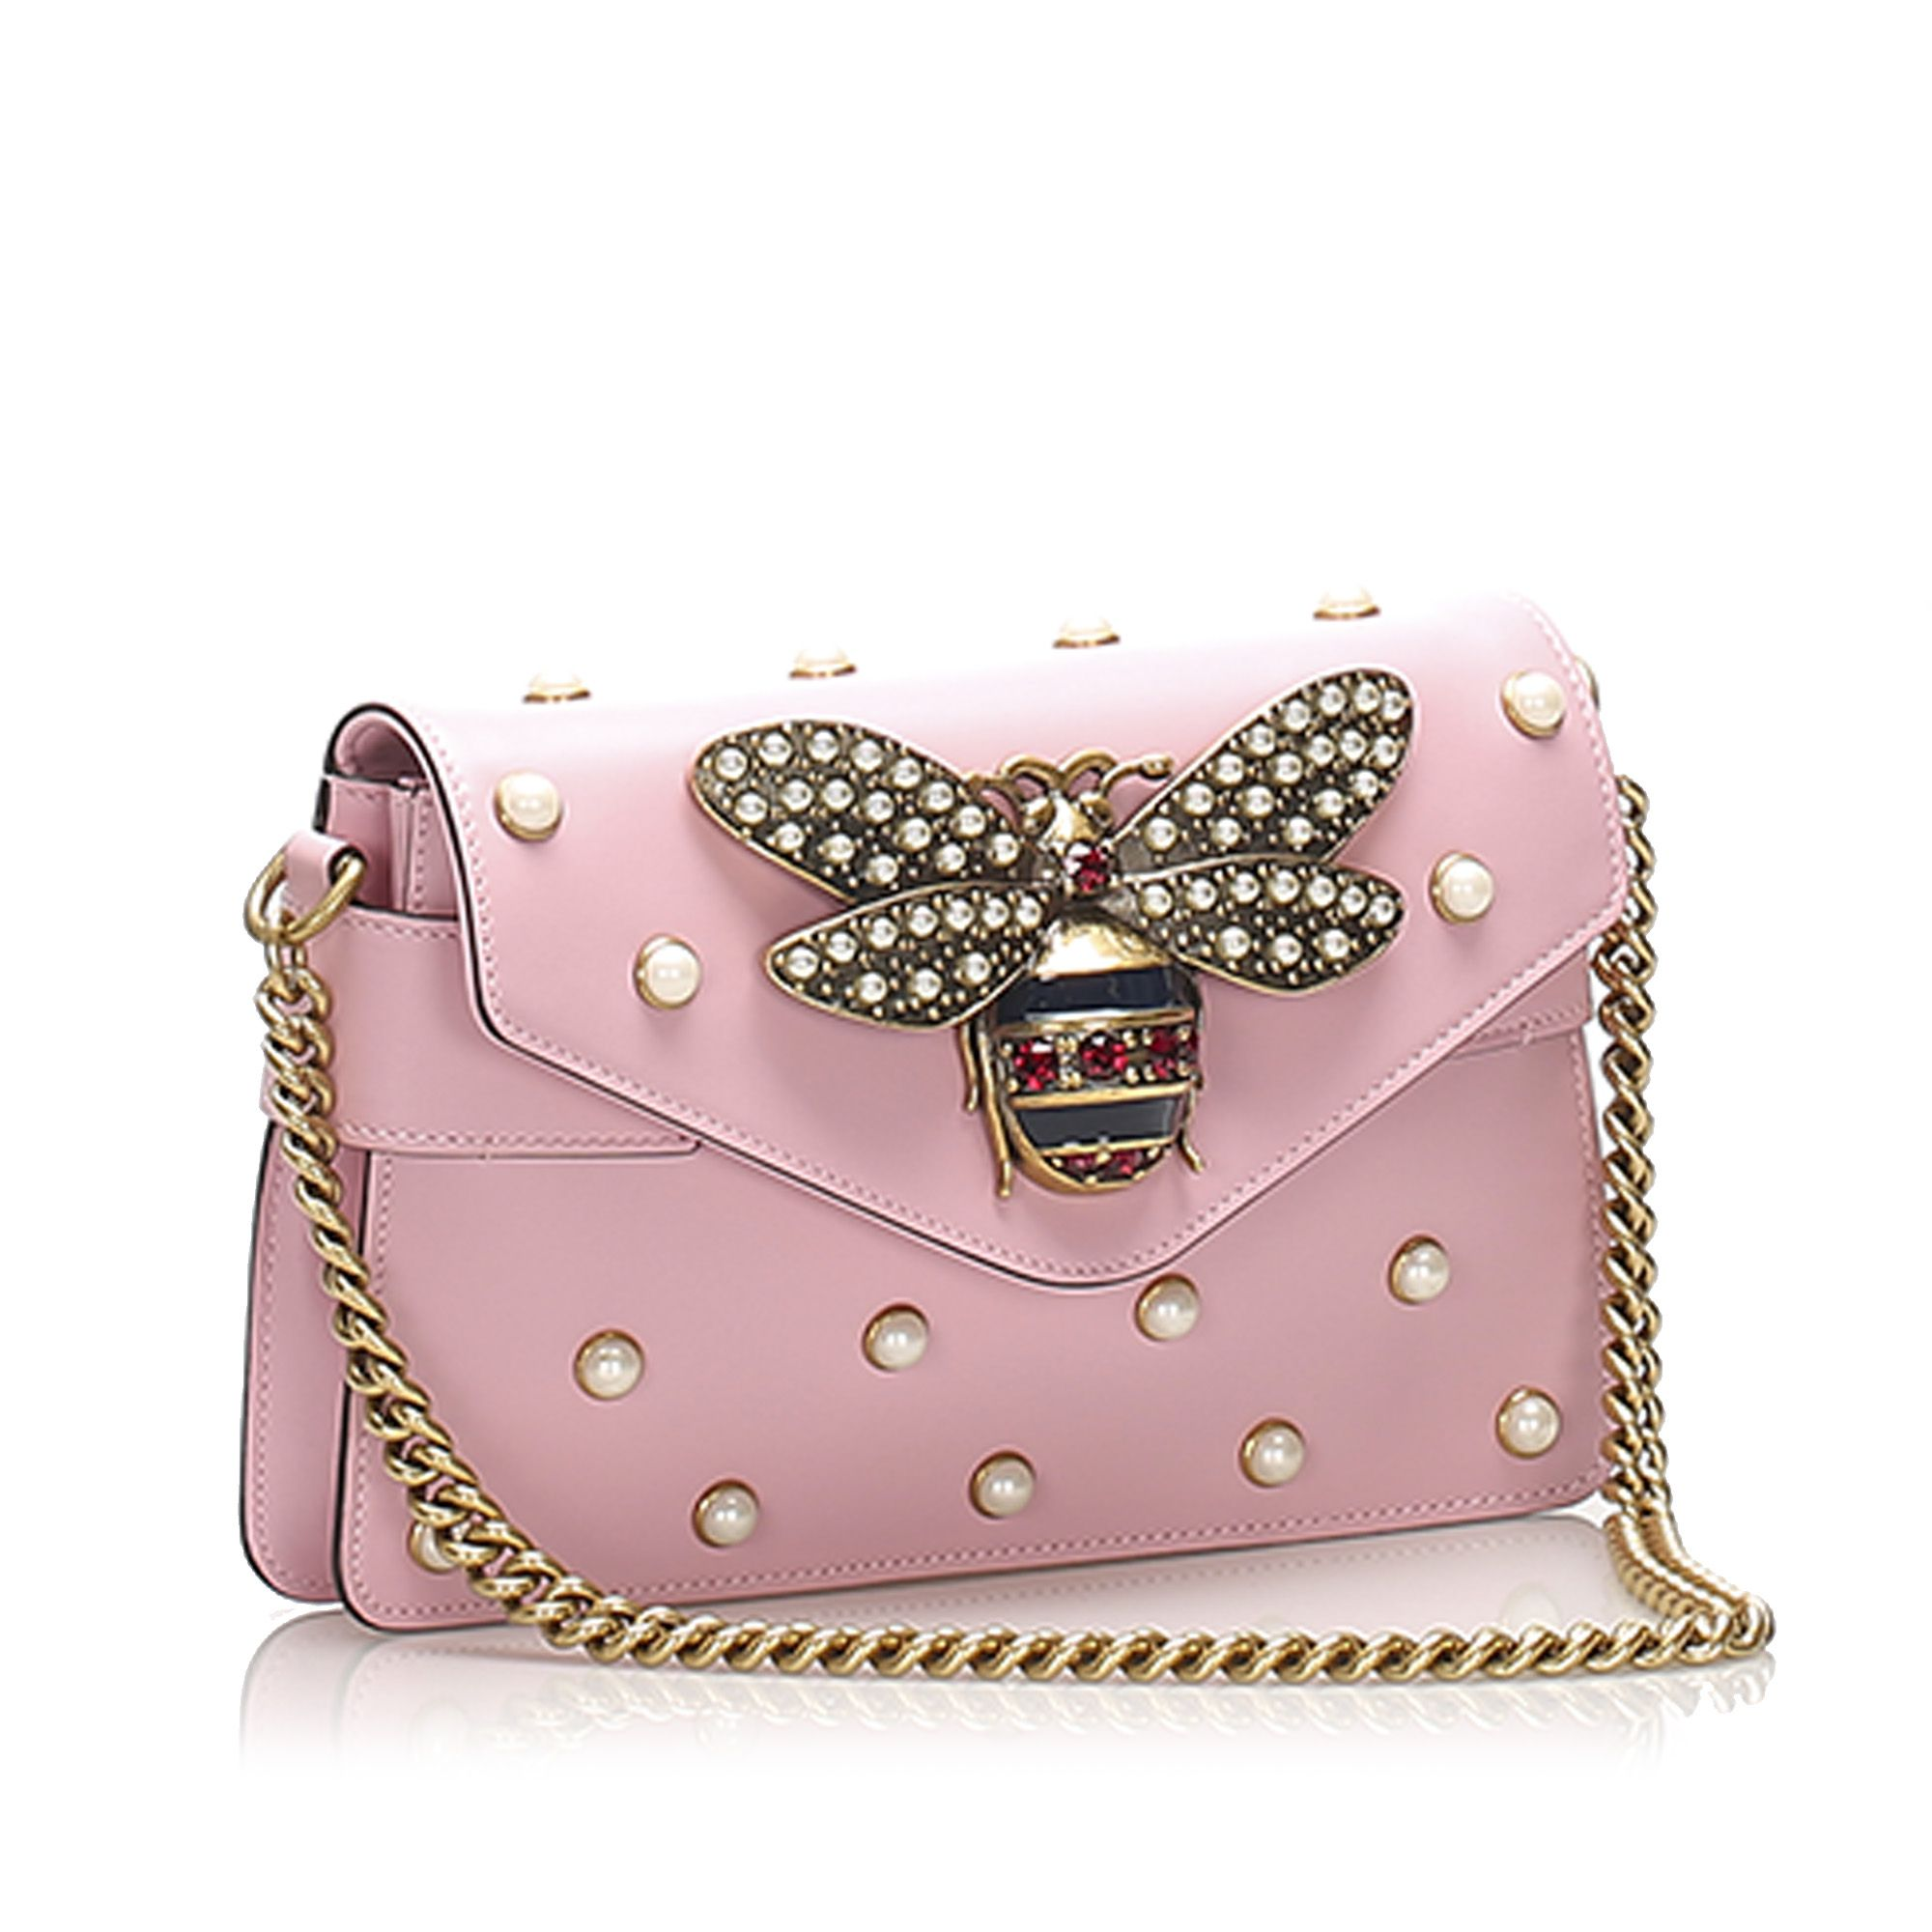 Vintage Gucci Broadway Pearly Bee Leather Crossbody Bag Pink